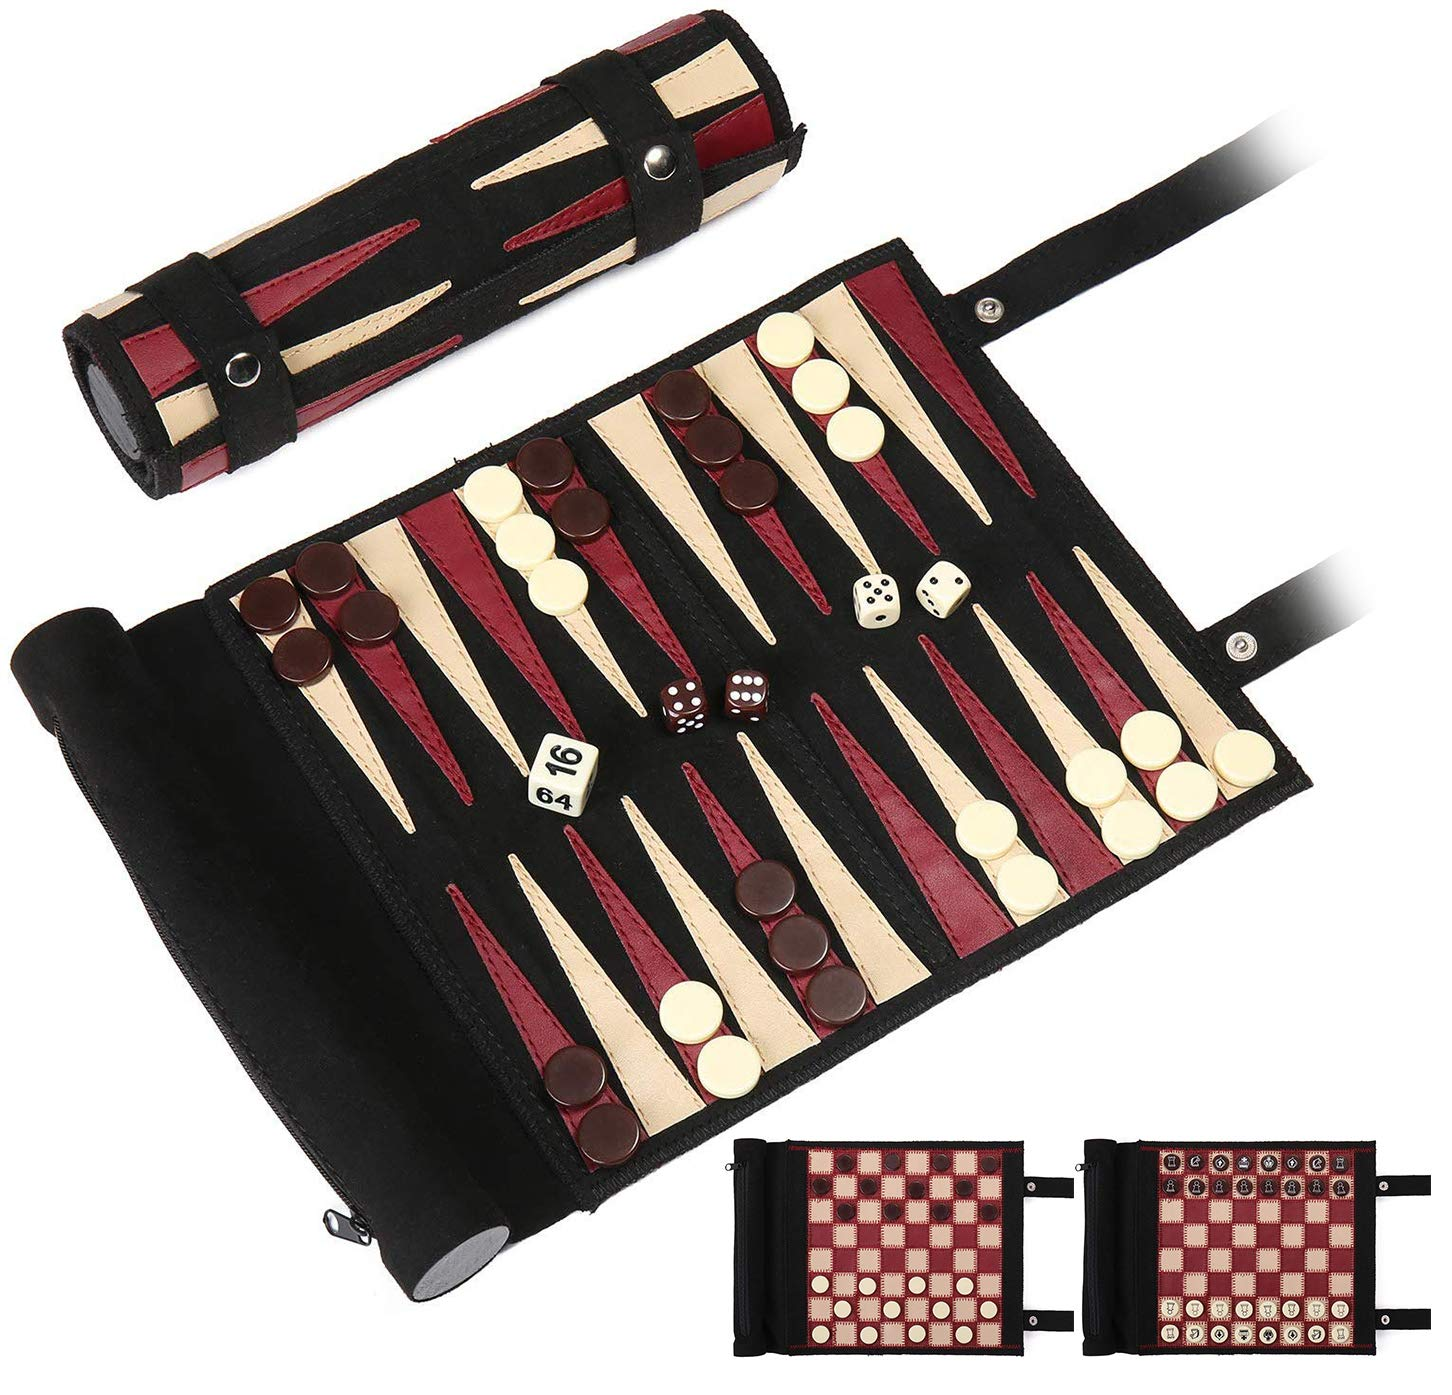 Woodronic Roll Up 3 in 1 Game Set, Backgammon Chess Checker Travel Game Set, Luxurious Suede Leather Travel Size with Gift Packaging, Black & Red by Woodronic